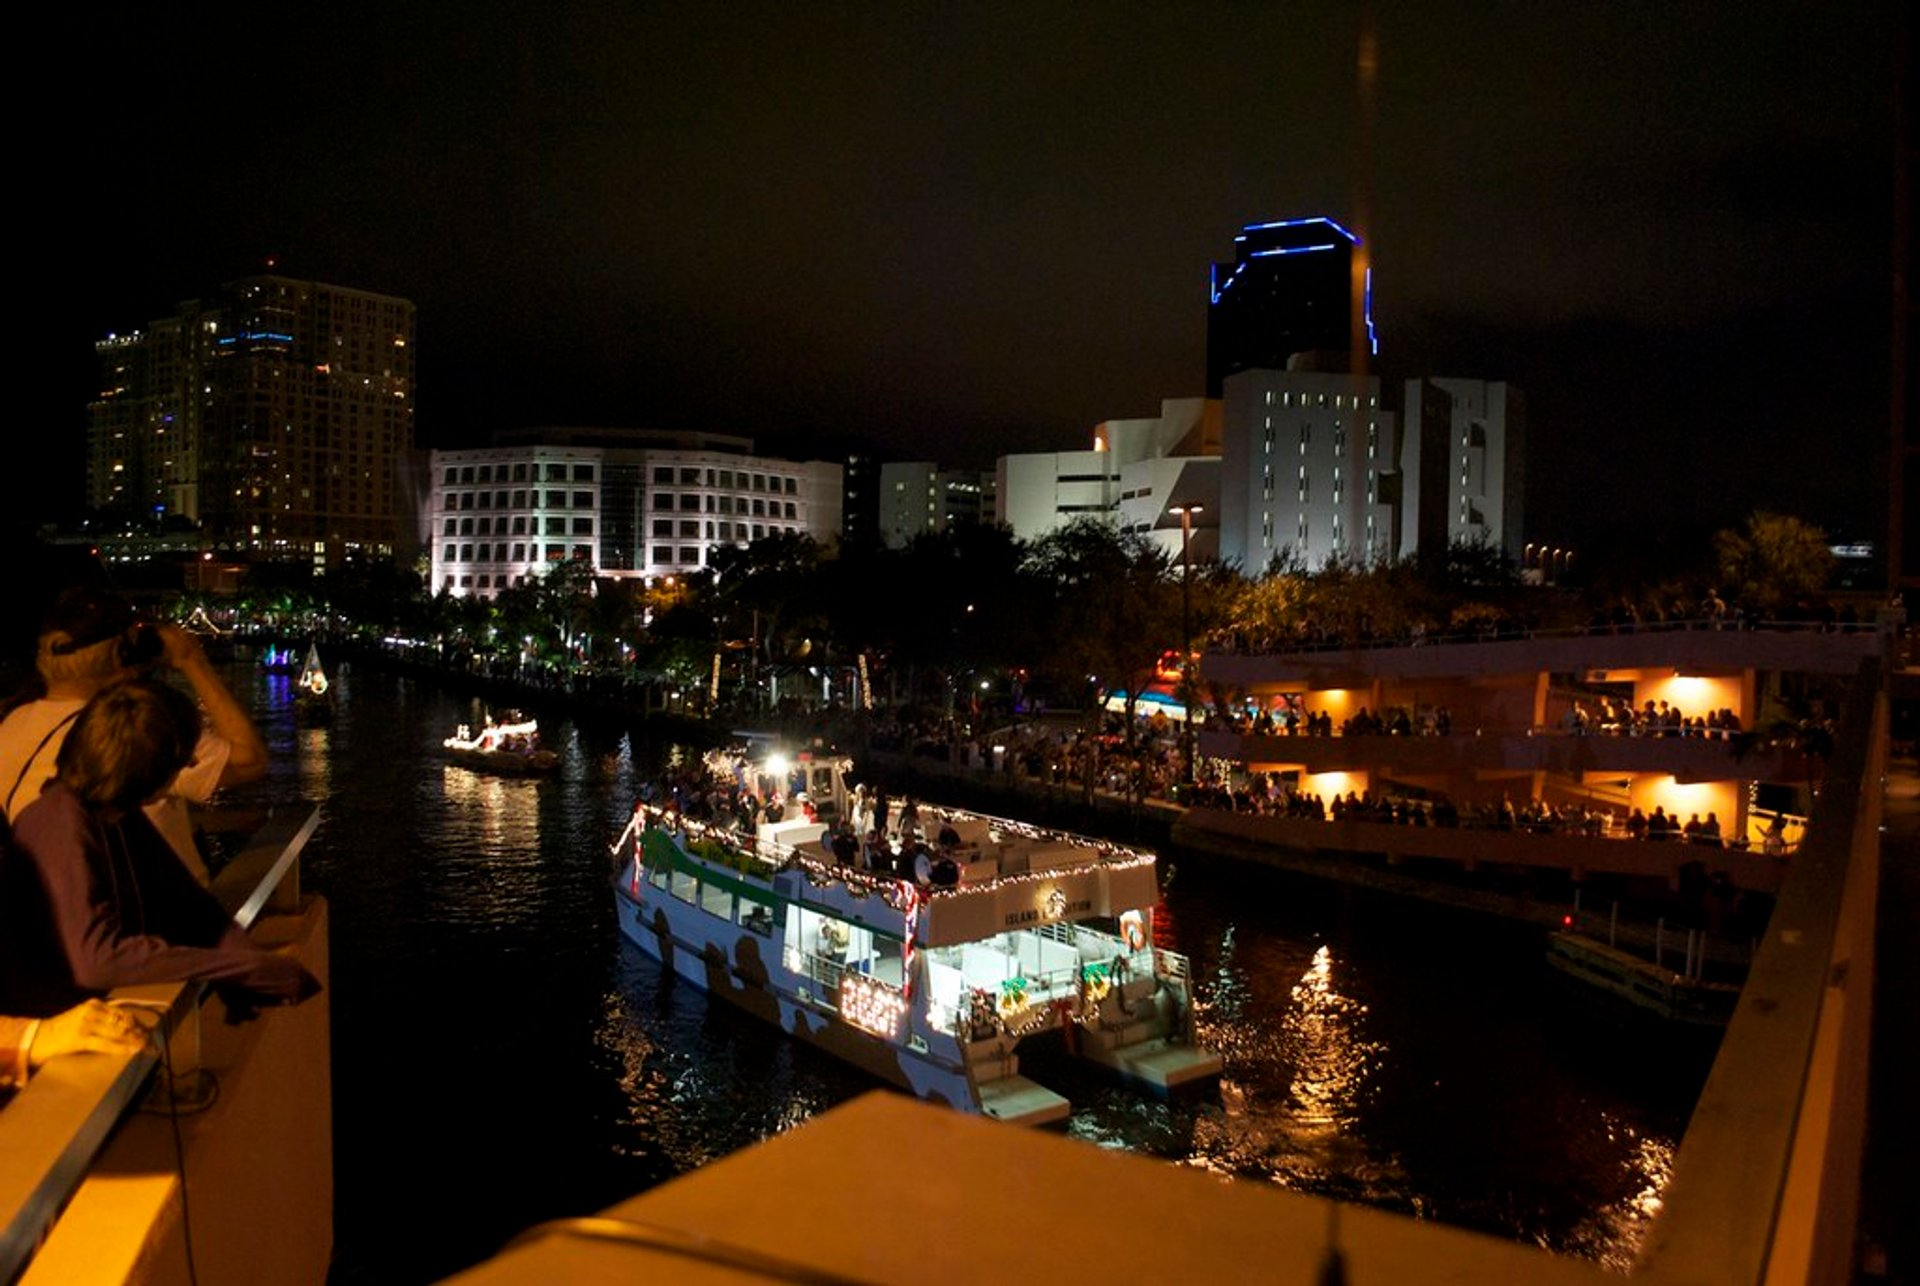 Winterfest Boat Parade in 2010 2020